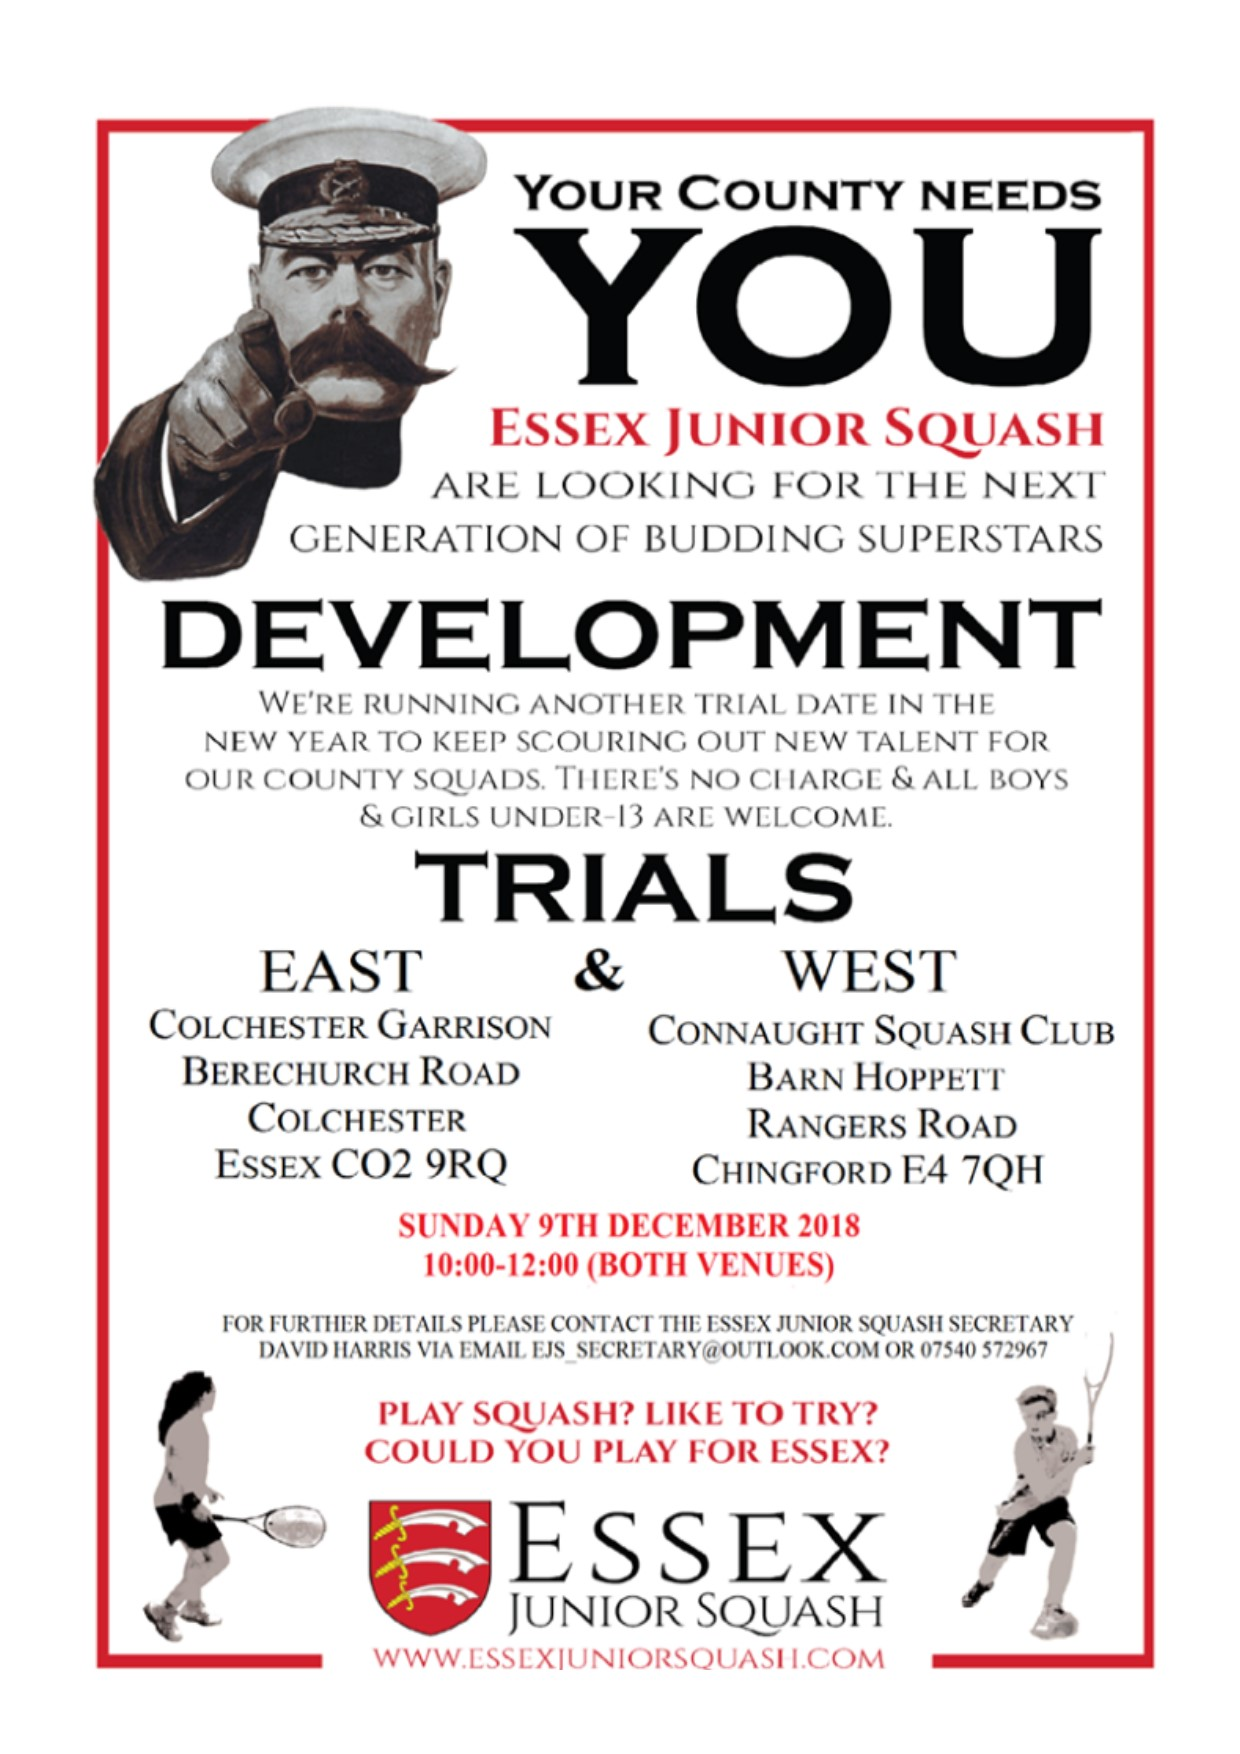 Come along to Essex junior squash trials on December 9th